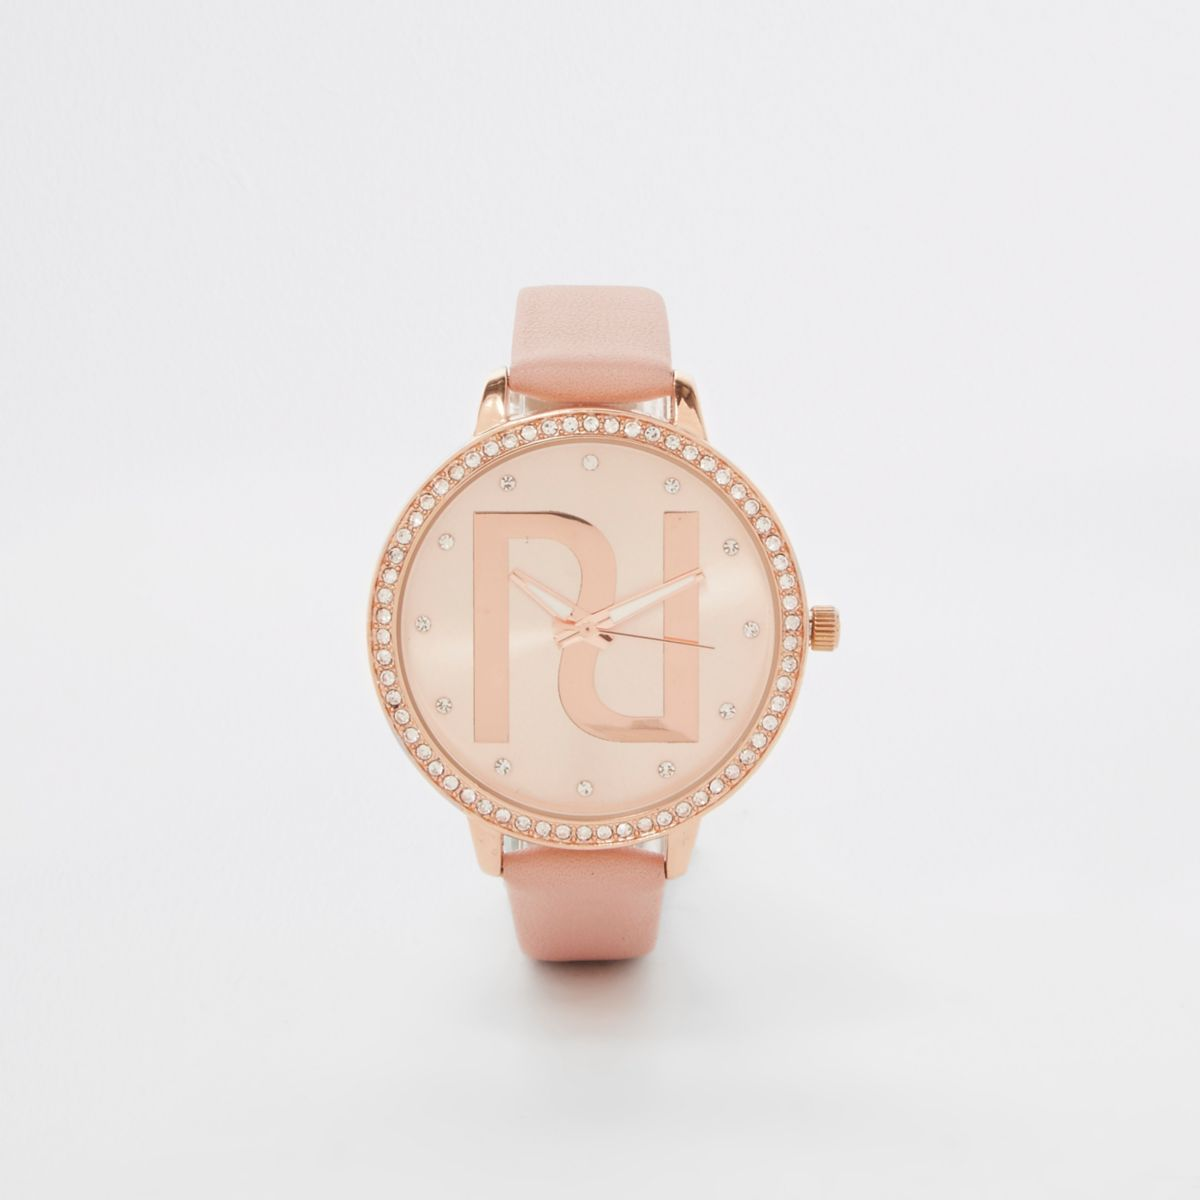 Rose gold tone RI branded watch